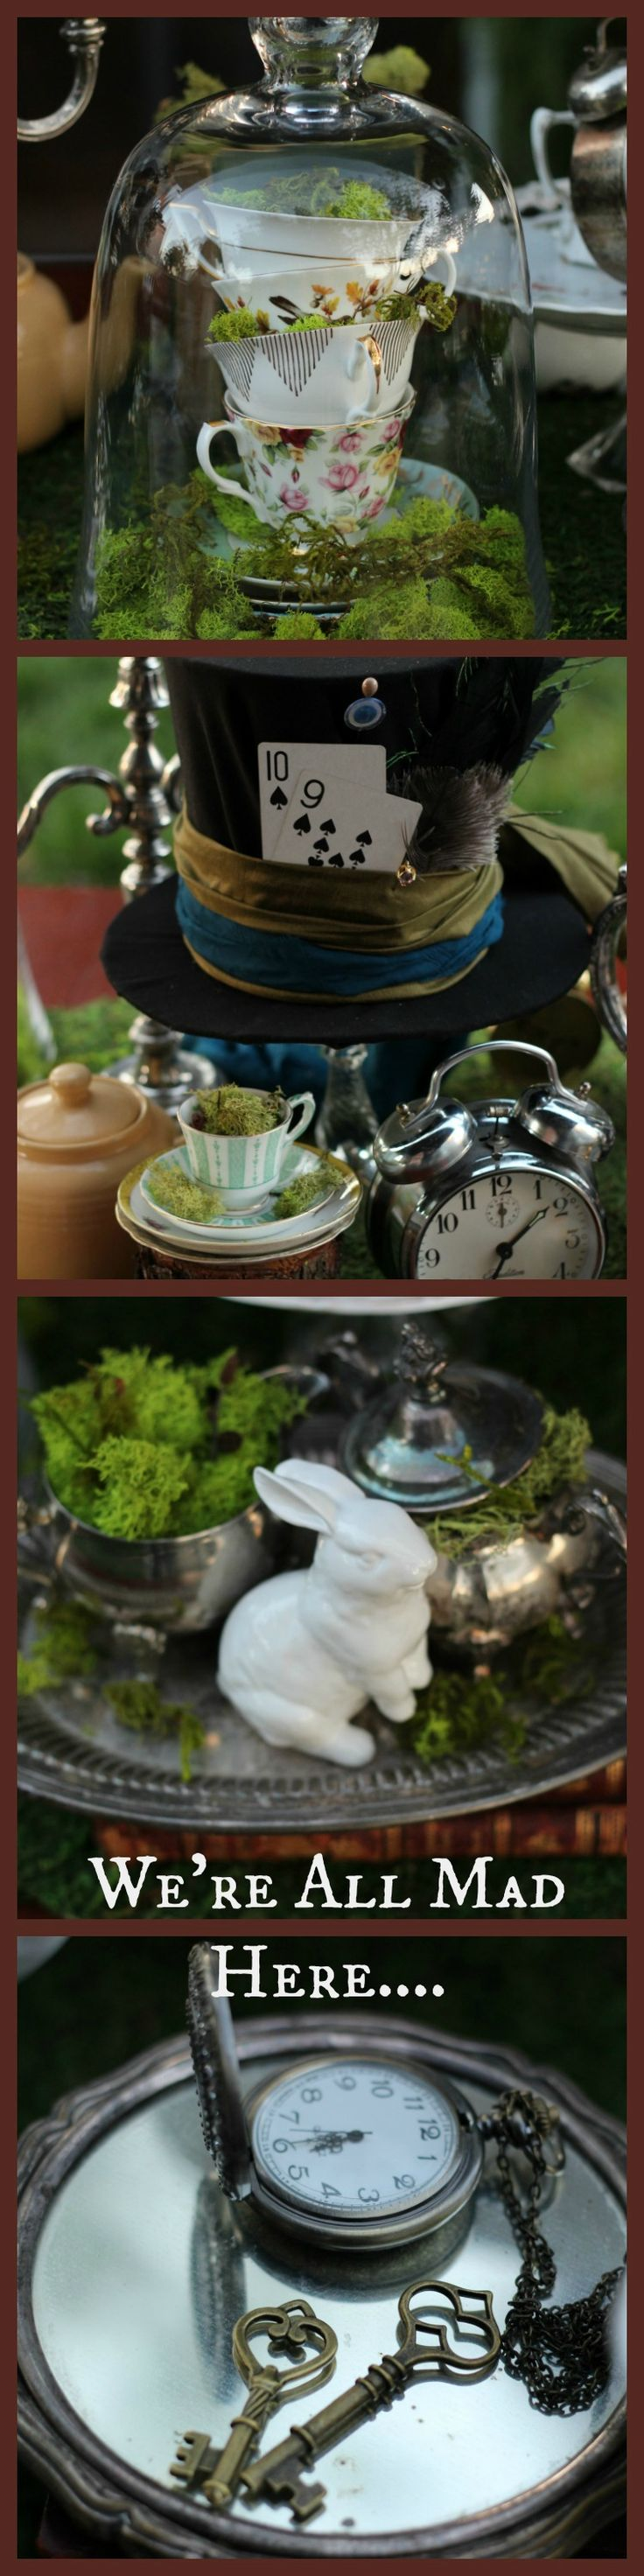 732 Best Ideas About Alice In Wonderland On Pinterest Tea Parties Lewis Carroll And